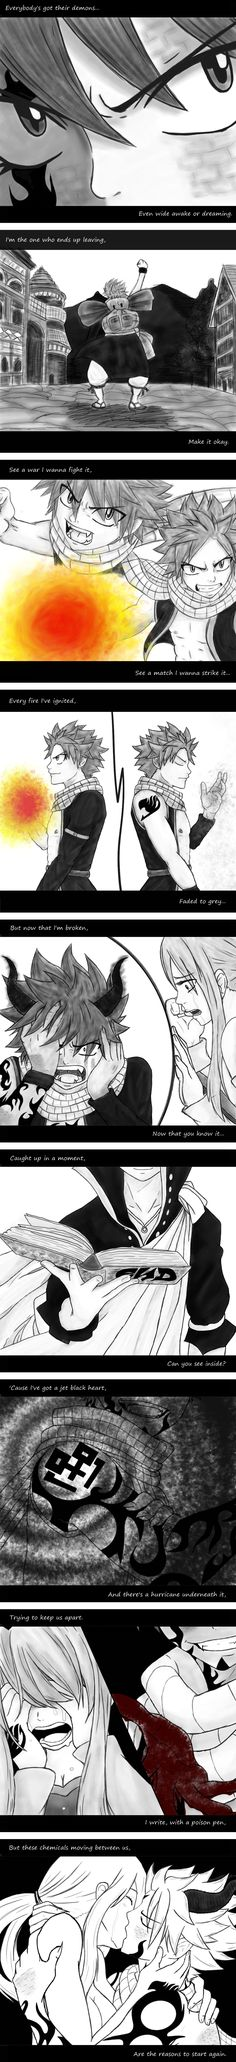 END!Nalu - Jet Black Heart by bittybitt39 on DeviantArt